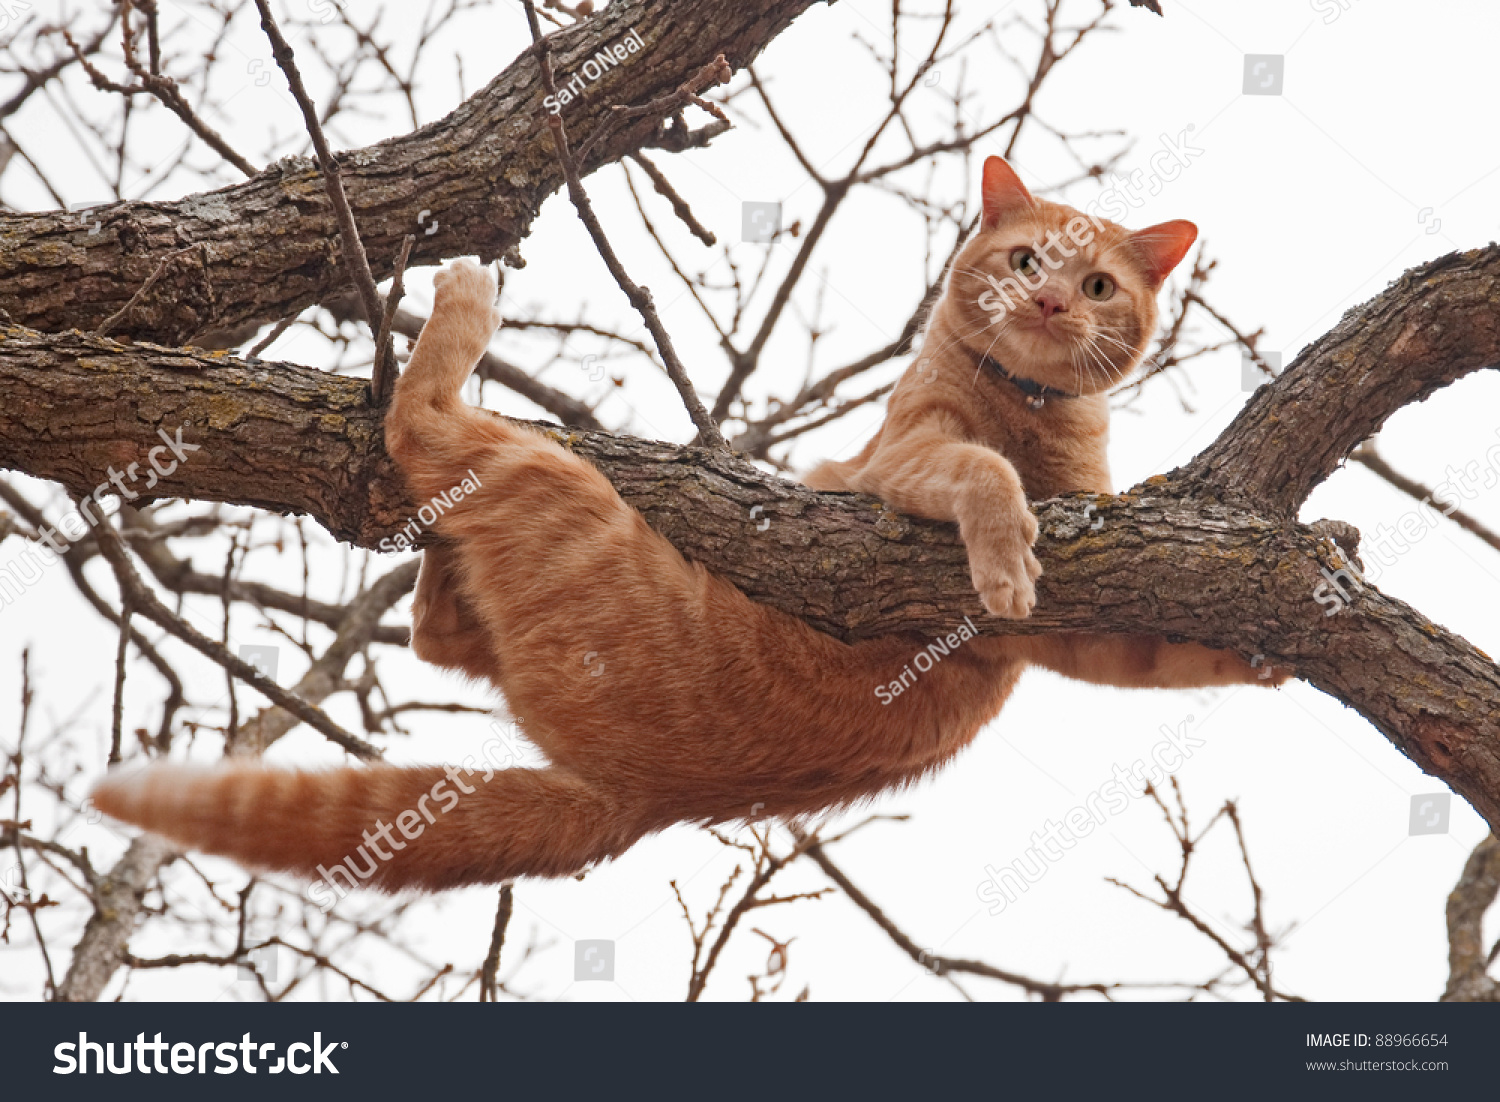 stock-photo-cat-in-distress-orange-tabby